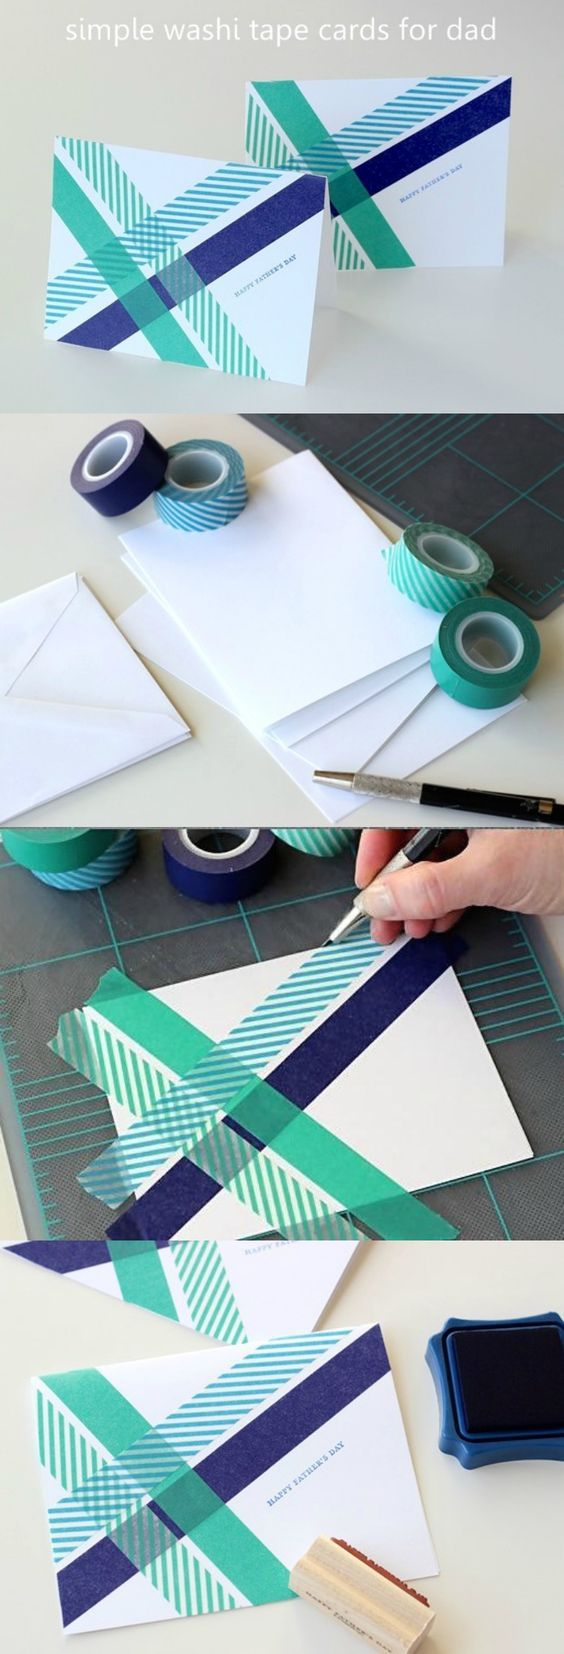 I enjoy making simple, handmade cards for holidays and birthdays. And I have to say that crafting with washi tape is one of THE easiest ways to make a cute, homemade card. You don't need loads of fancy stamps or layers of paper… just a little tape and a simple stamp!